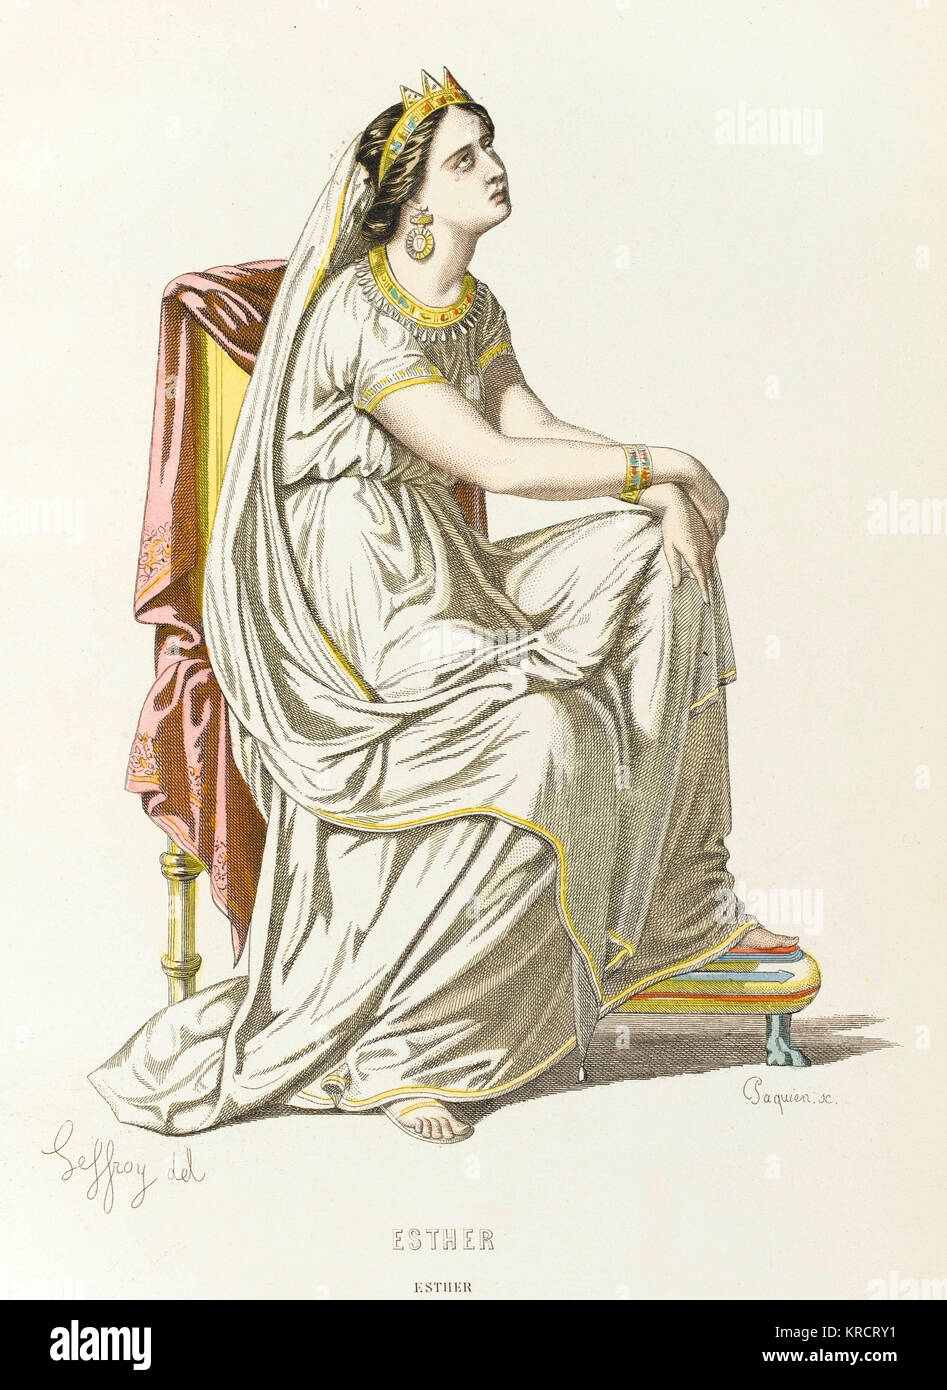 Esther, queen of Persia, as presented by Jean Racine in his play 'Esther' Date: Stock Photo